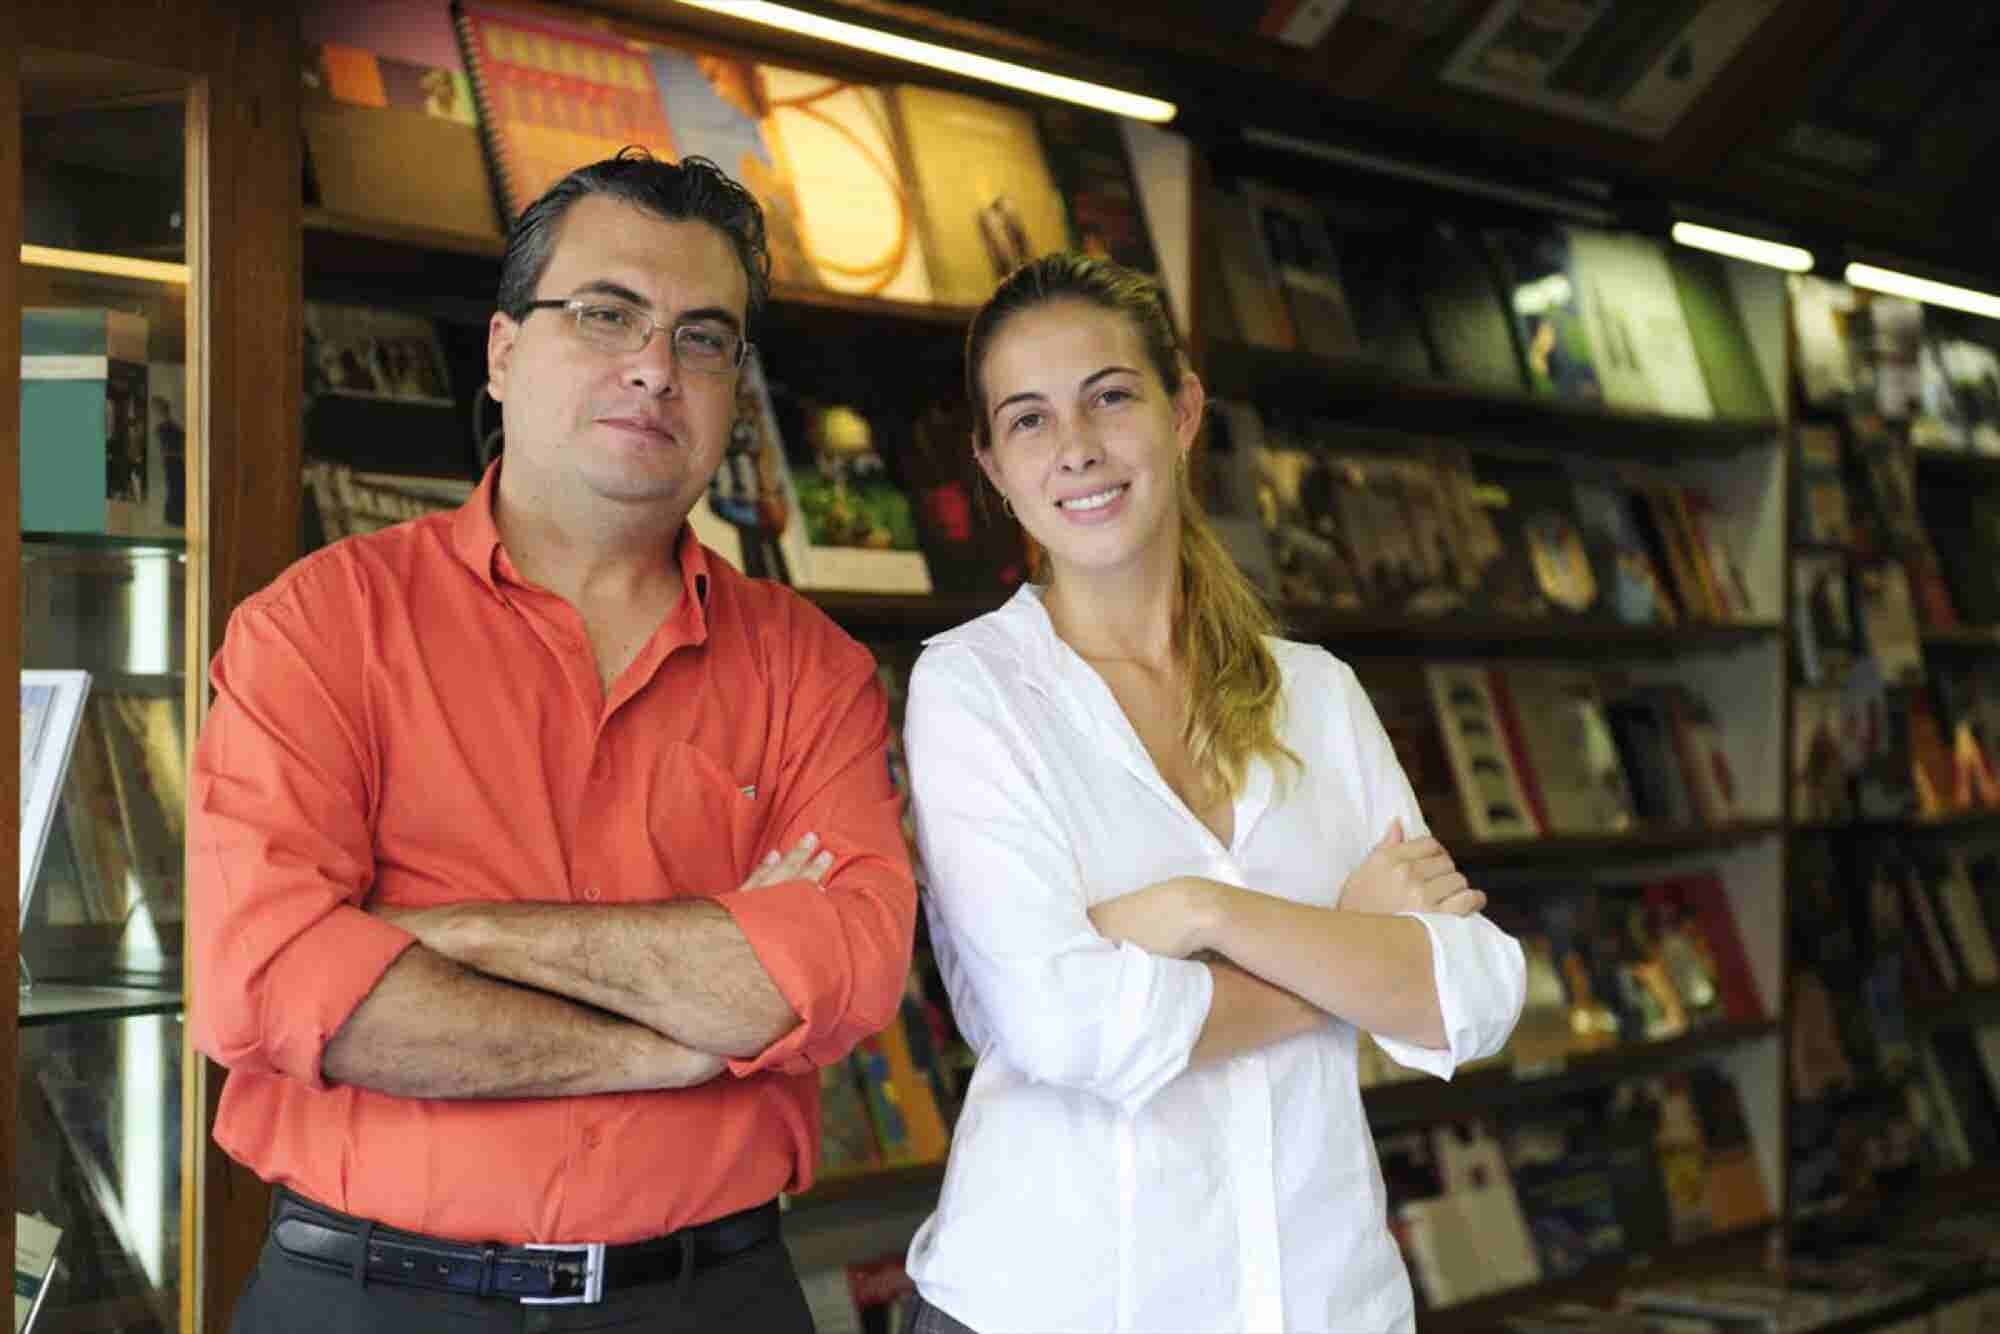 Secrets of a Third-Generation Family Business Where Families Come to Work